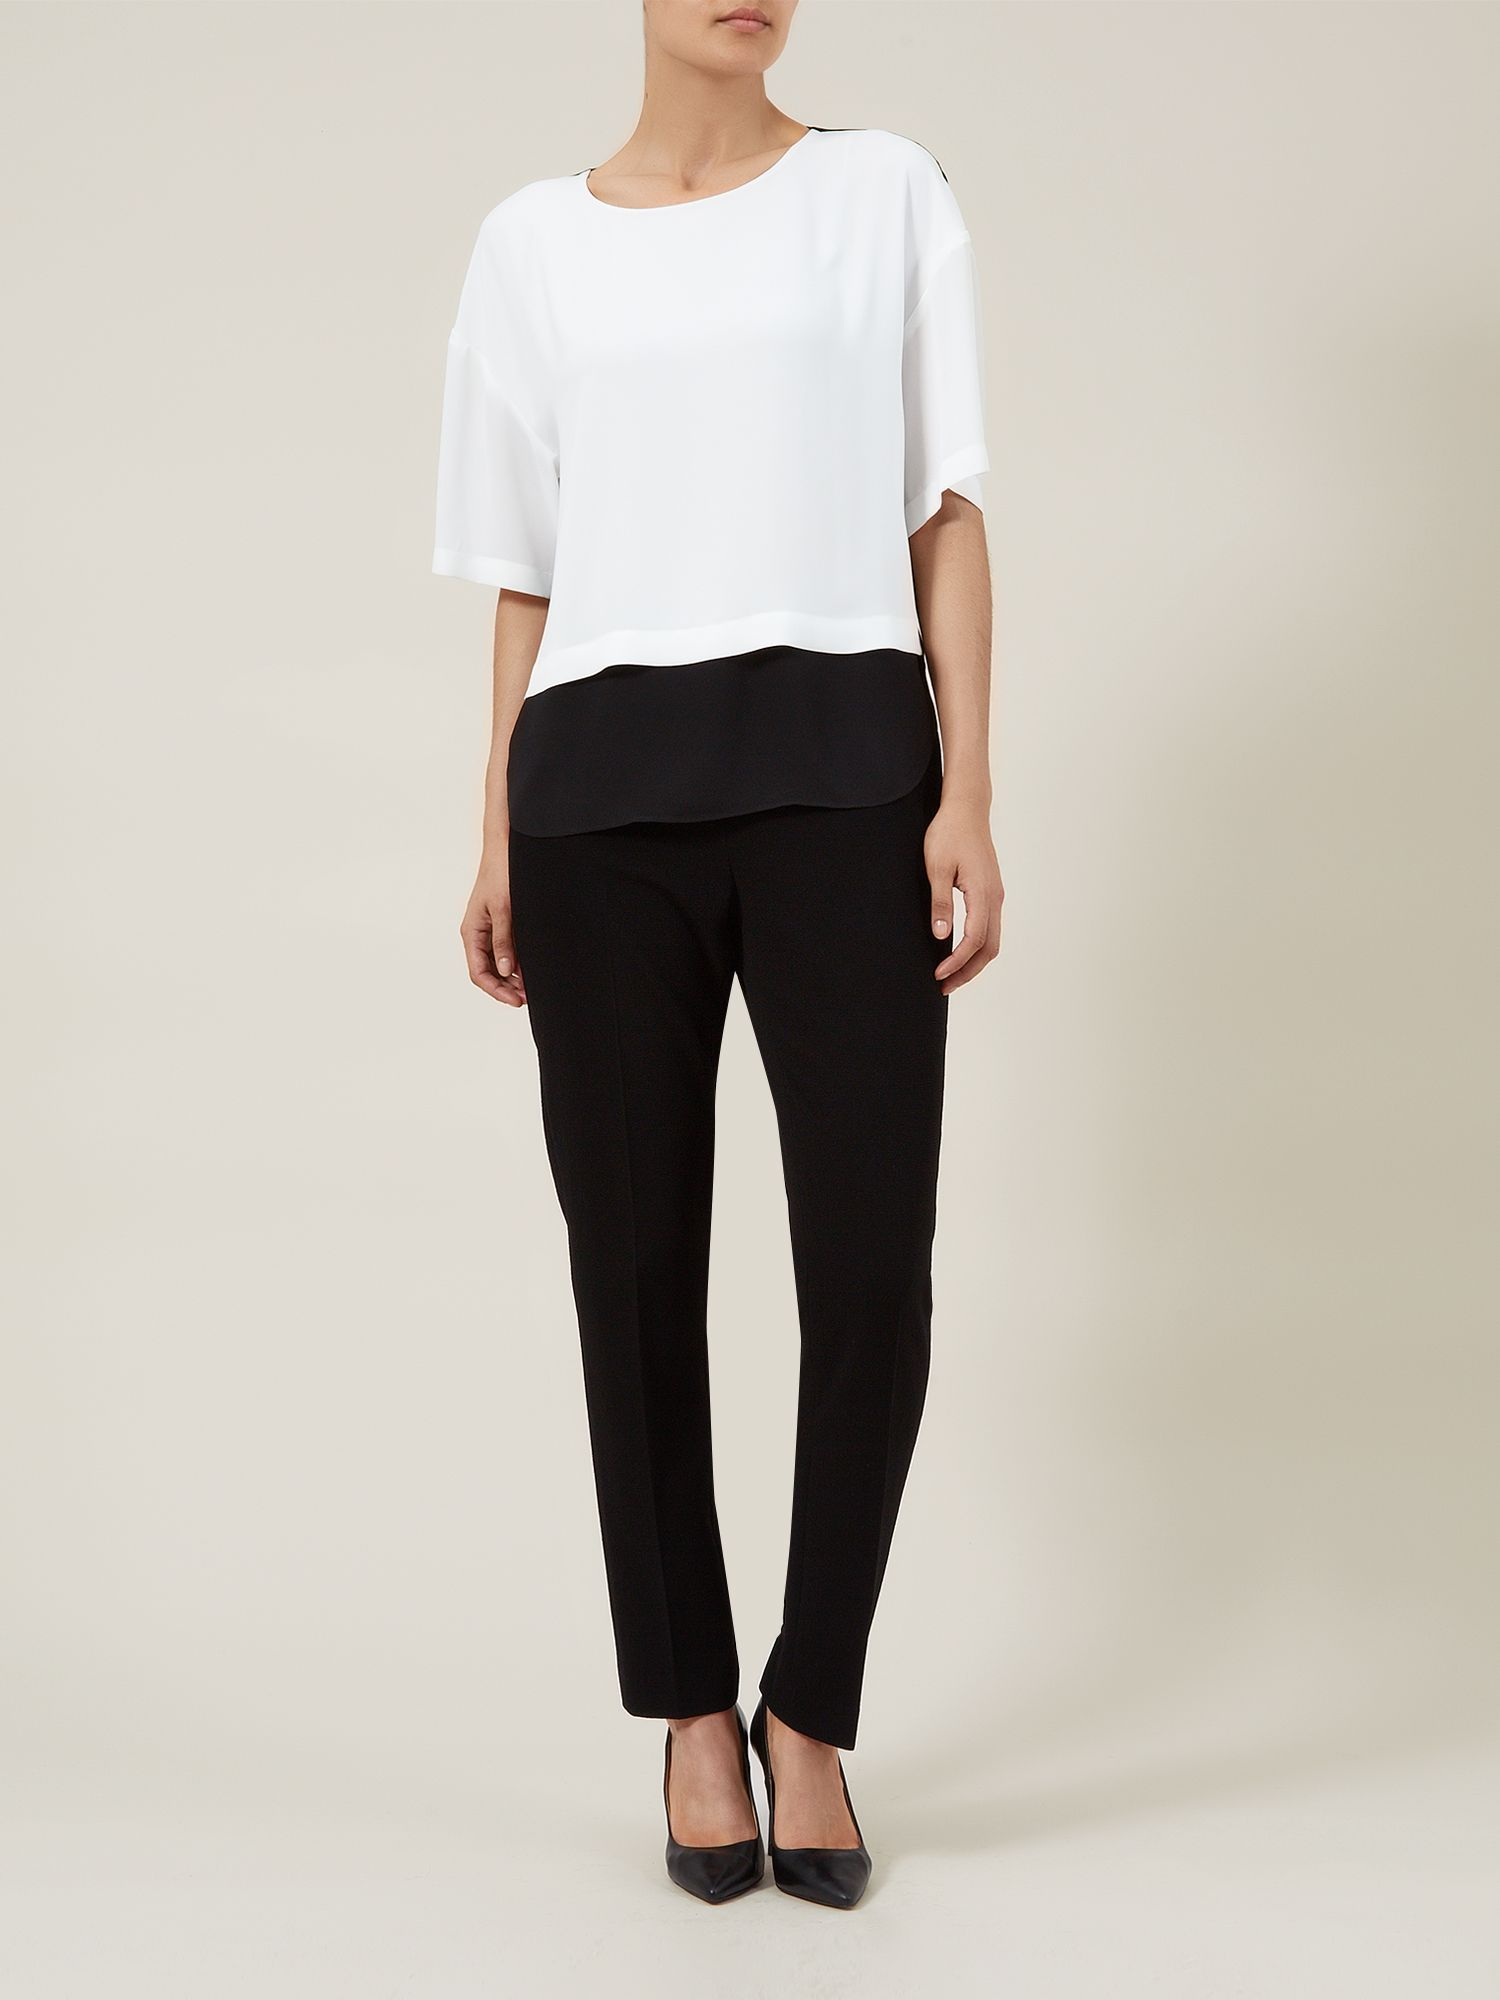 Ivory & Black Colour Block Blouse